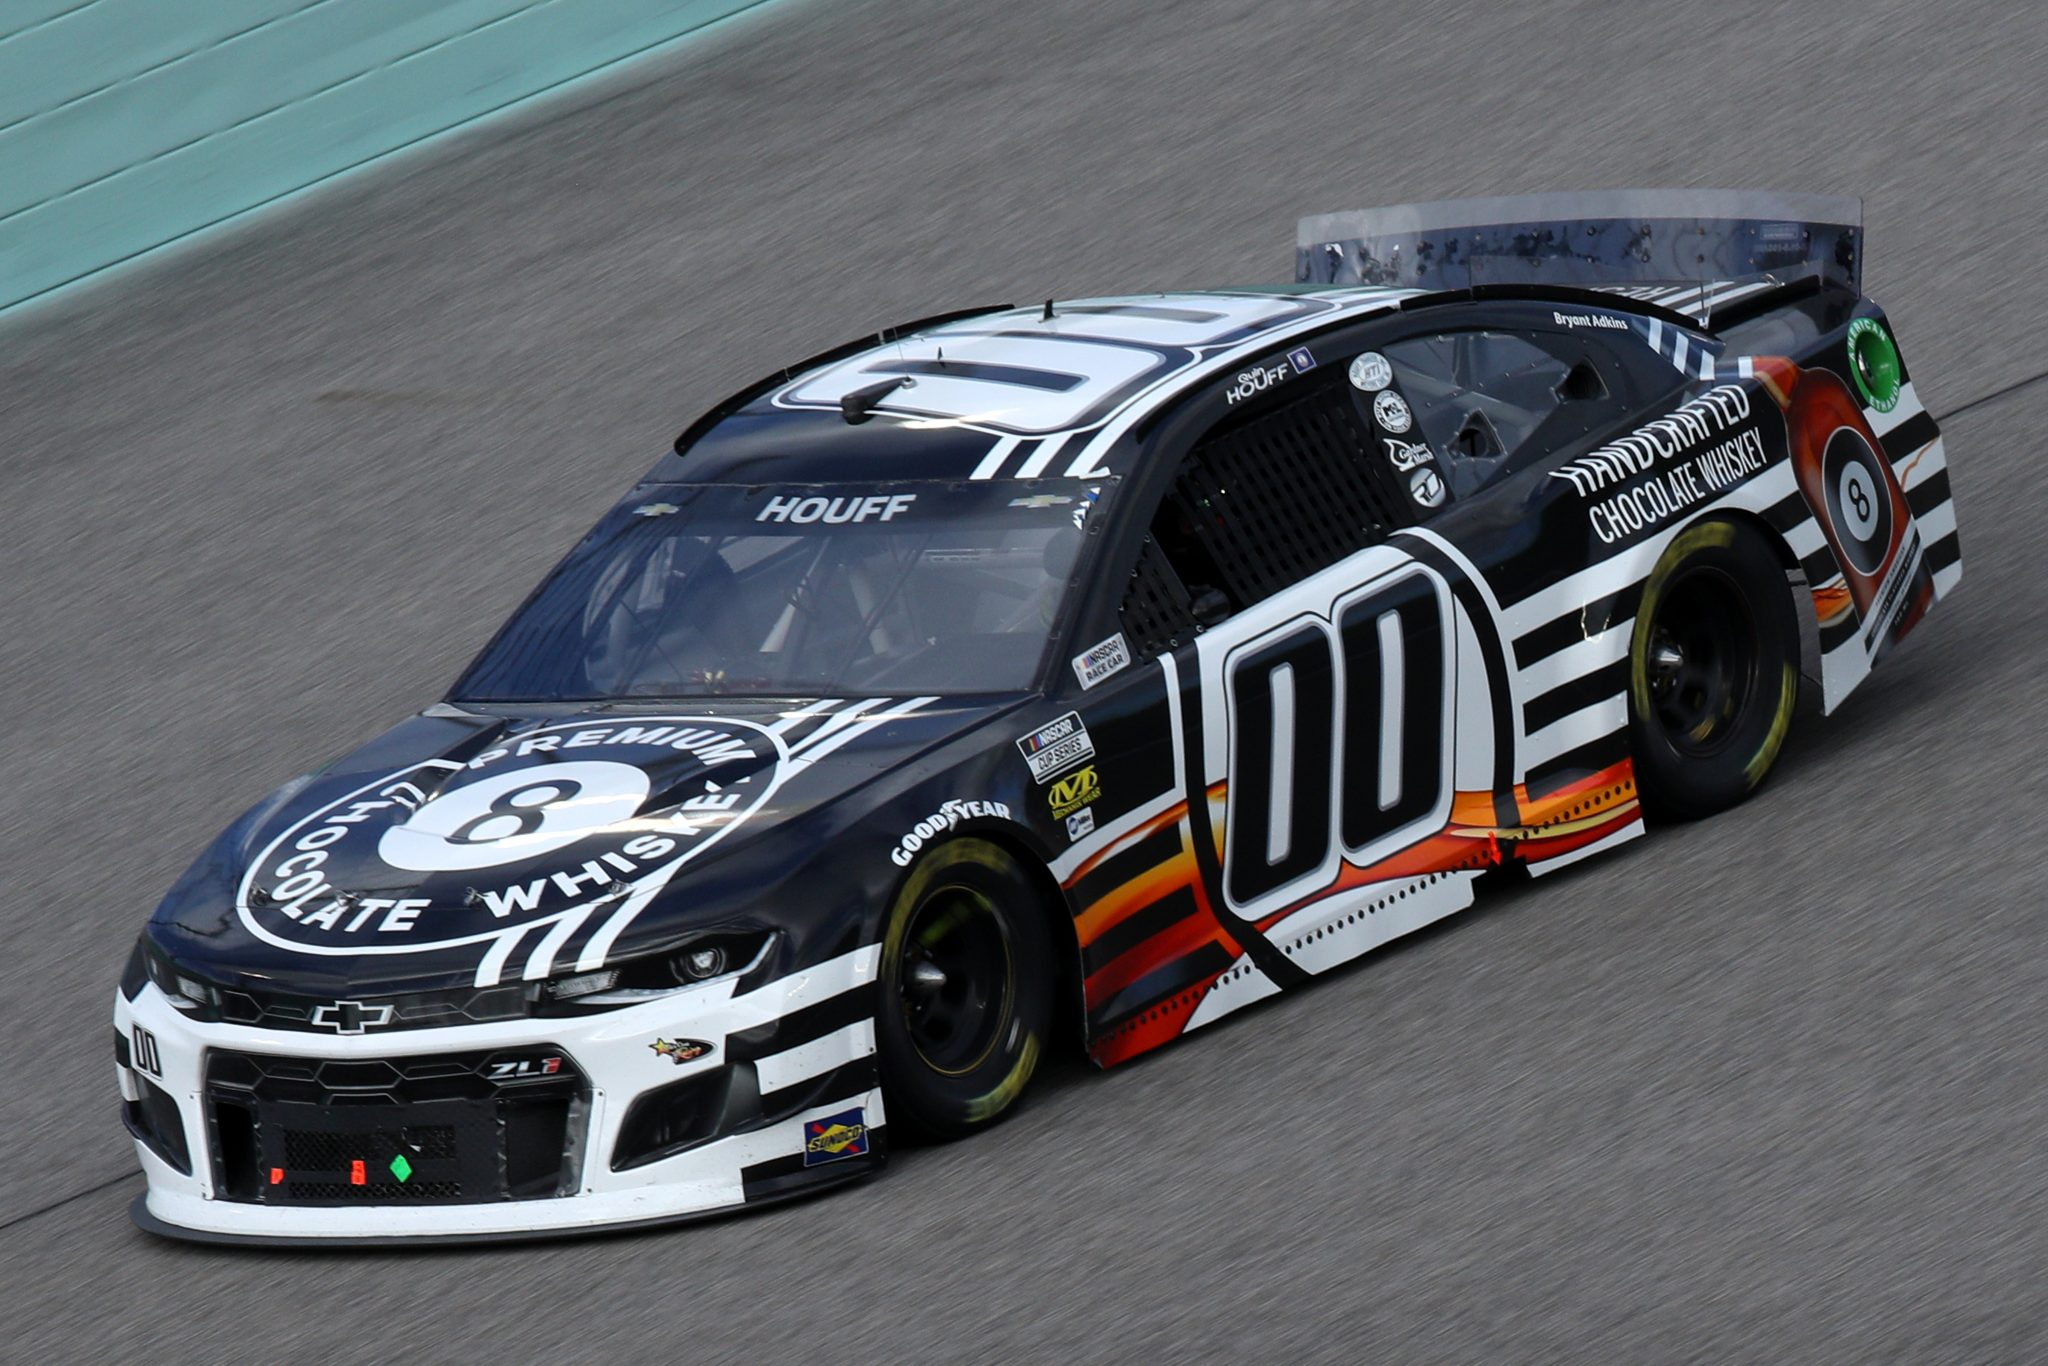 HOMESTEAD, FLORIDA - FEBRUARY 28: Quin Houff, driver of the #00 8 Ball Whiskey Chevrolet, drives during the NASCAR Cup Series Dixie Vodka 400 at Homestead-Miami Speedway on February 28, 2021 in Homestead, Florida. (Photo by Sean Gardner/Getty Images) | Getty Images